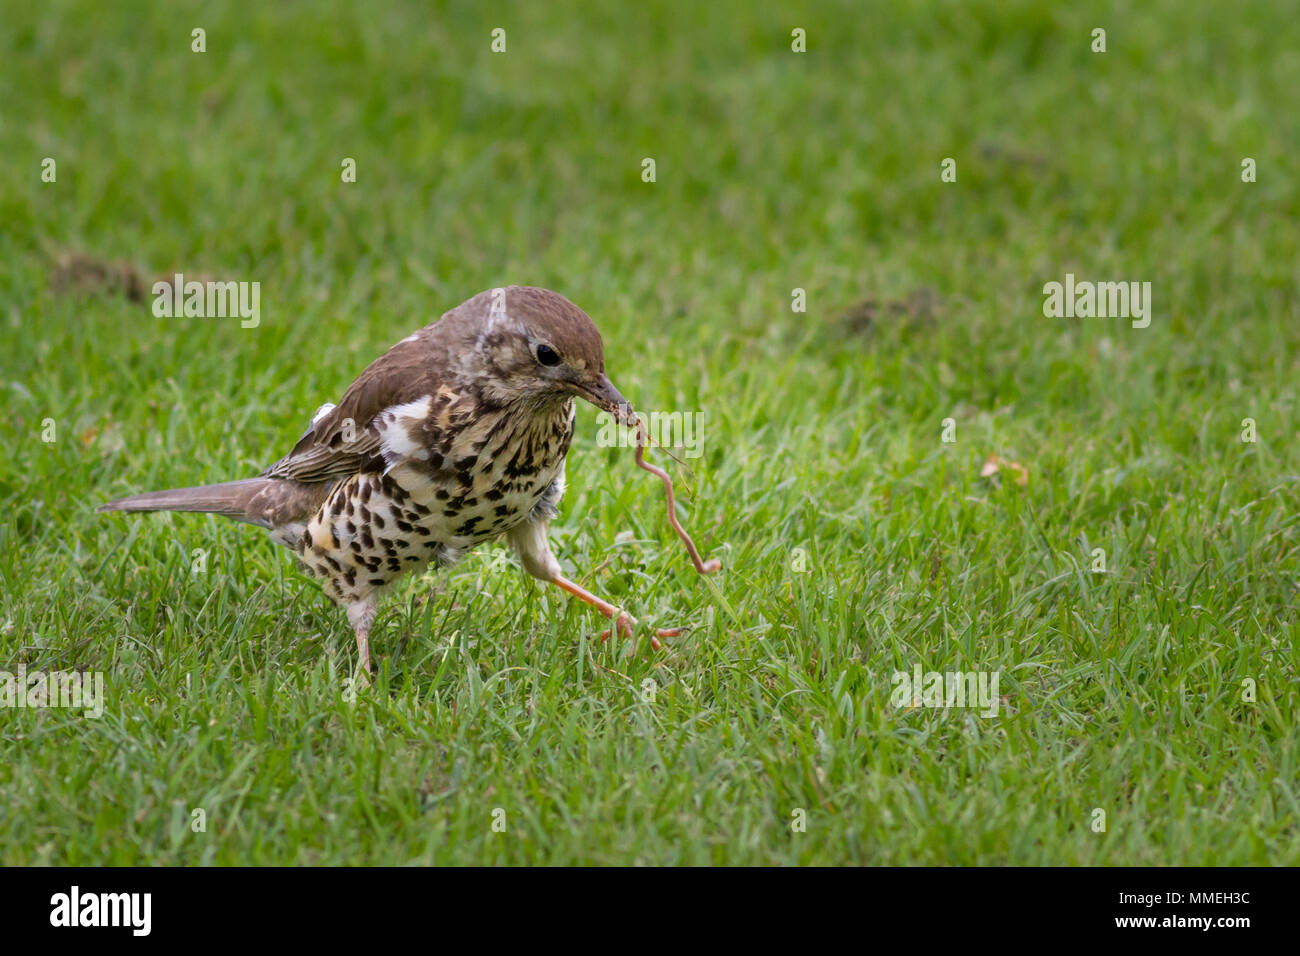 UK wildlife: mistle thrush tug of war with a worm sends it off balance as it wins the prize, West Yorkshire - Stock Image